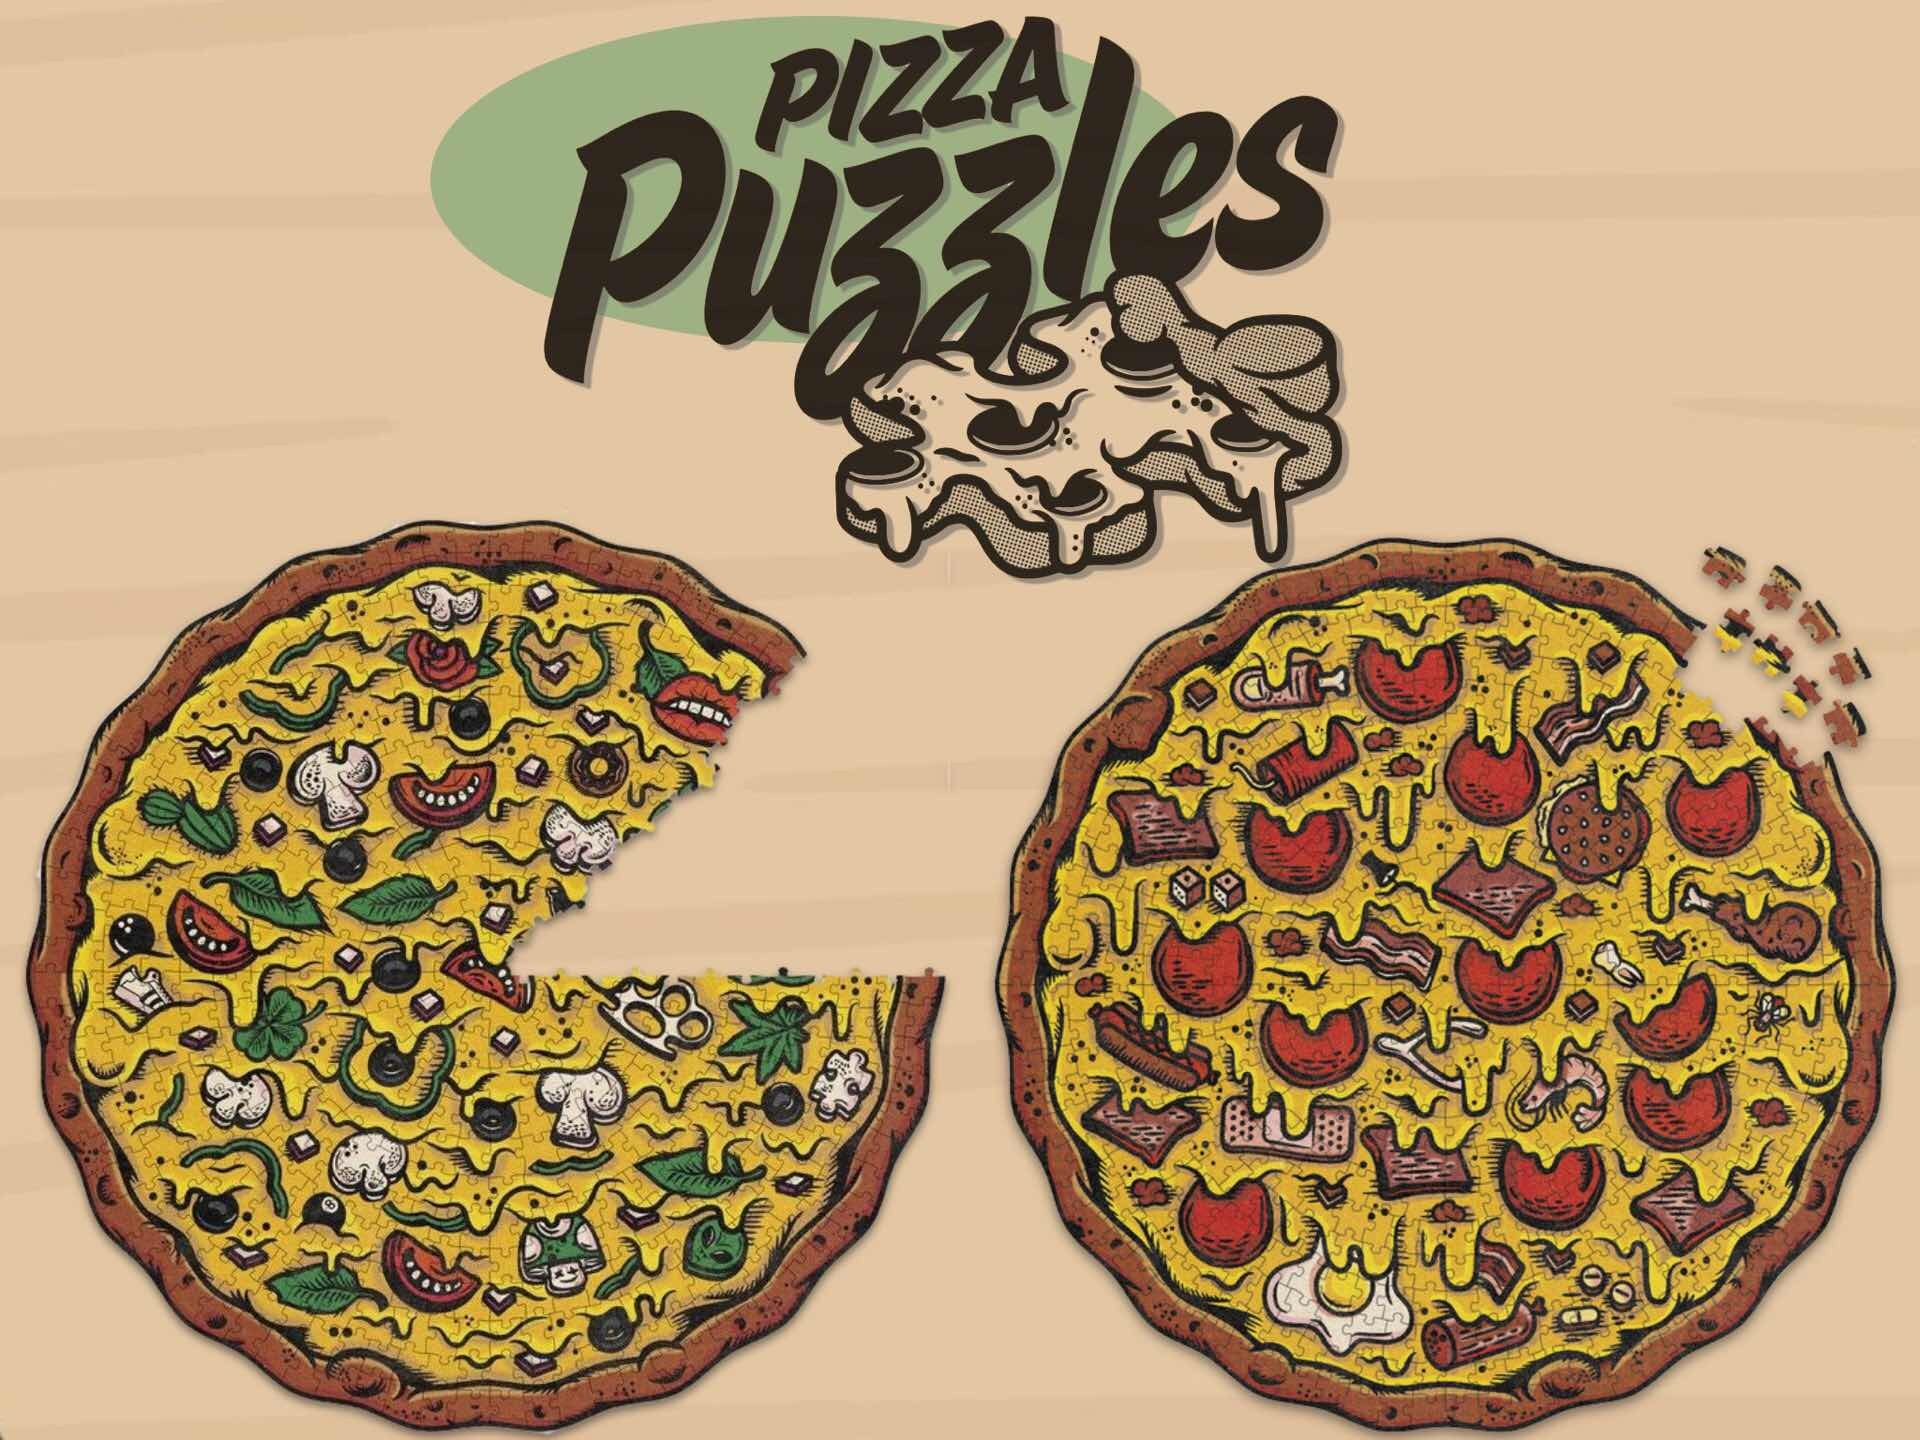 Pizza Puzzles by Stellar Factory. ($15 each)